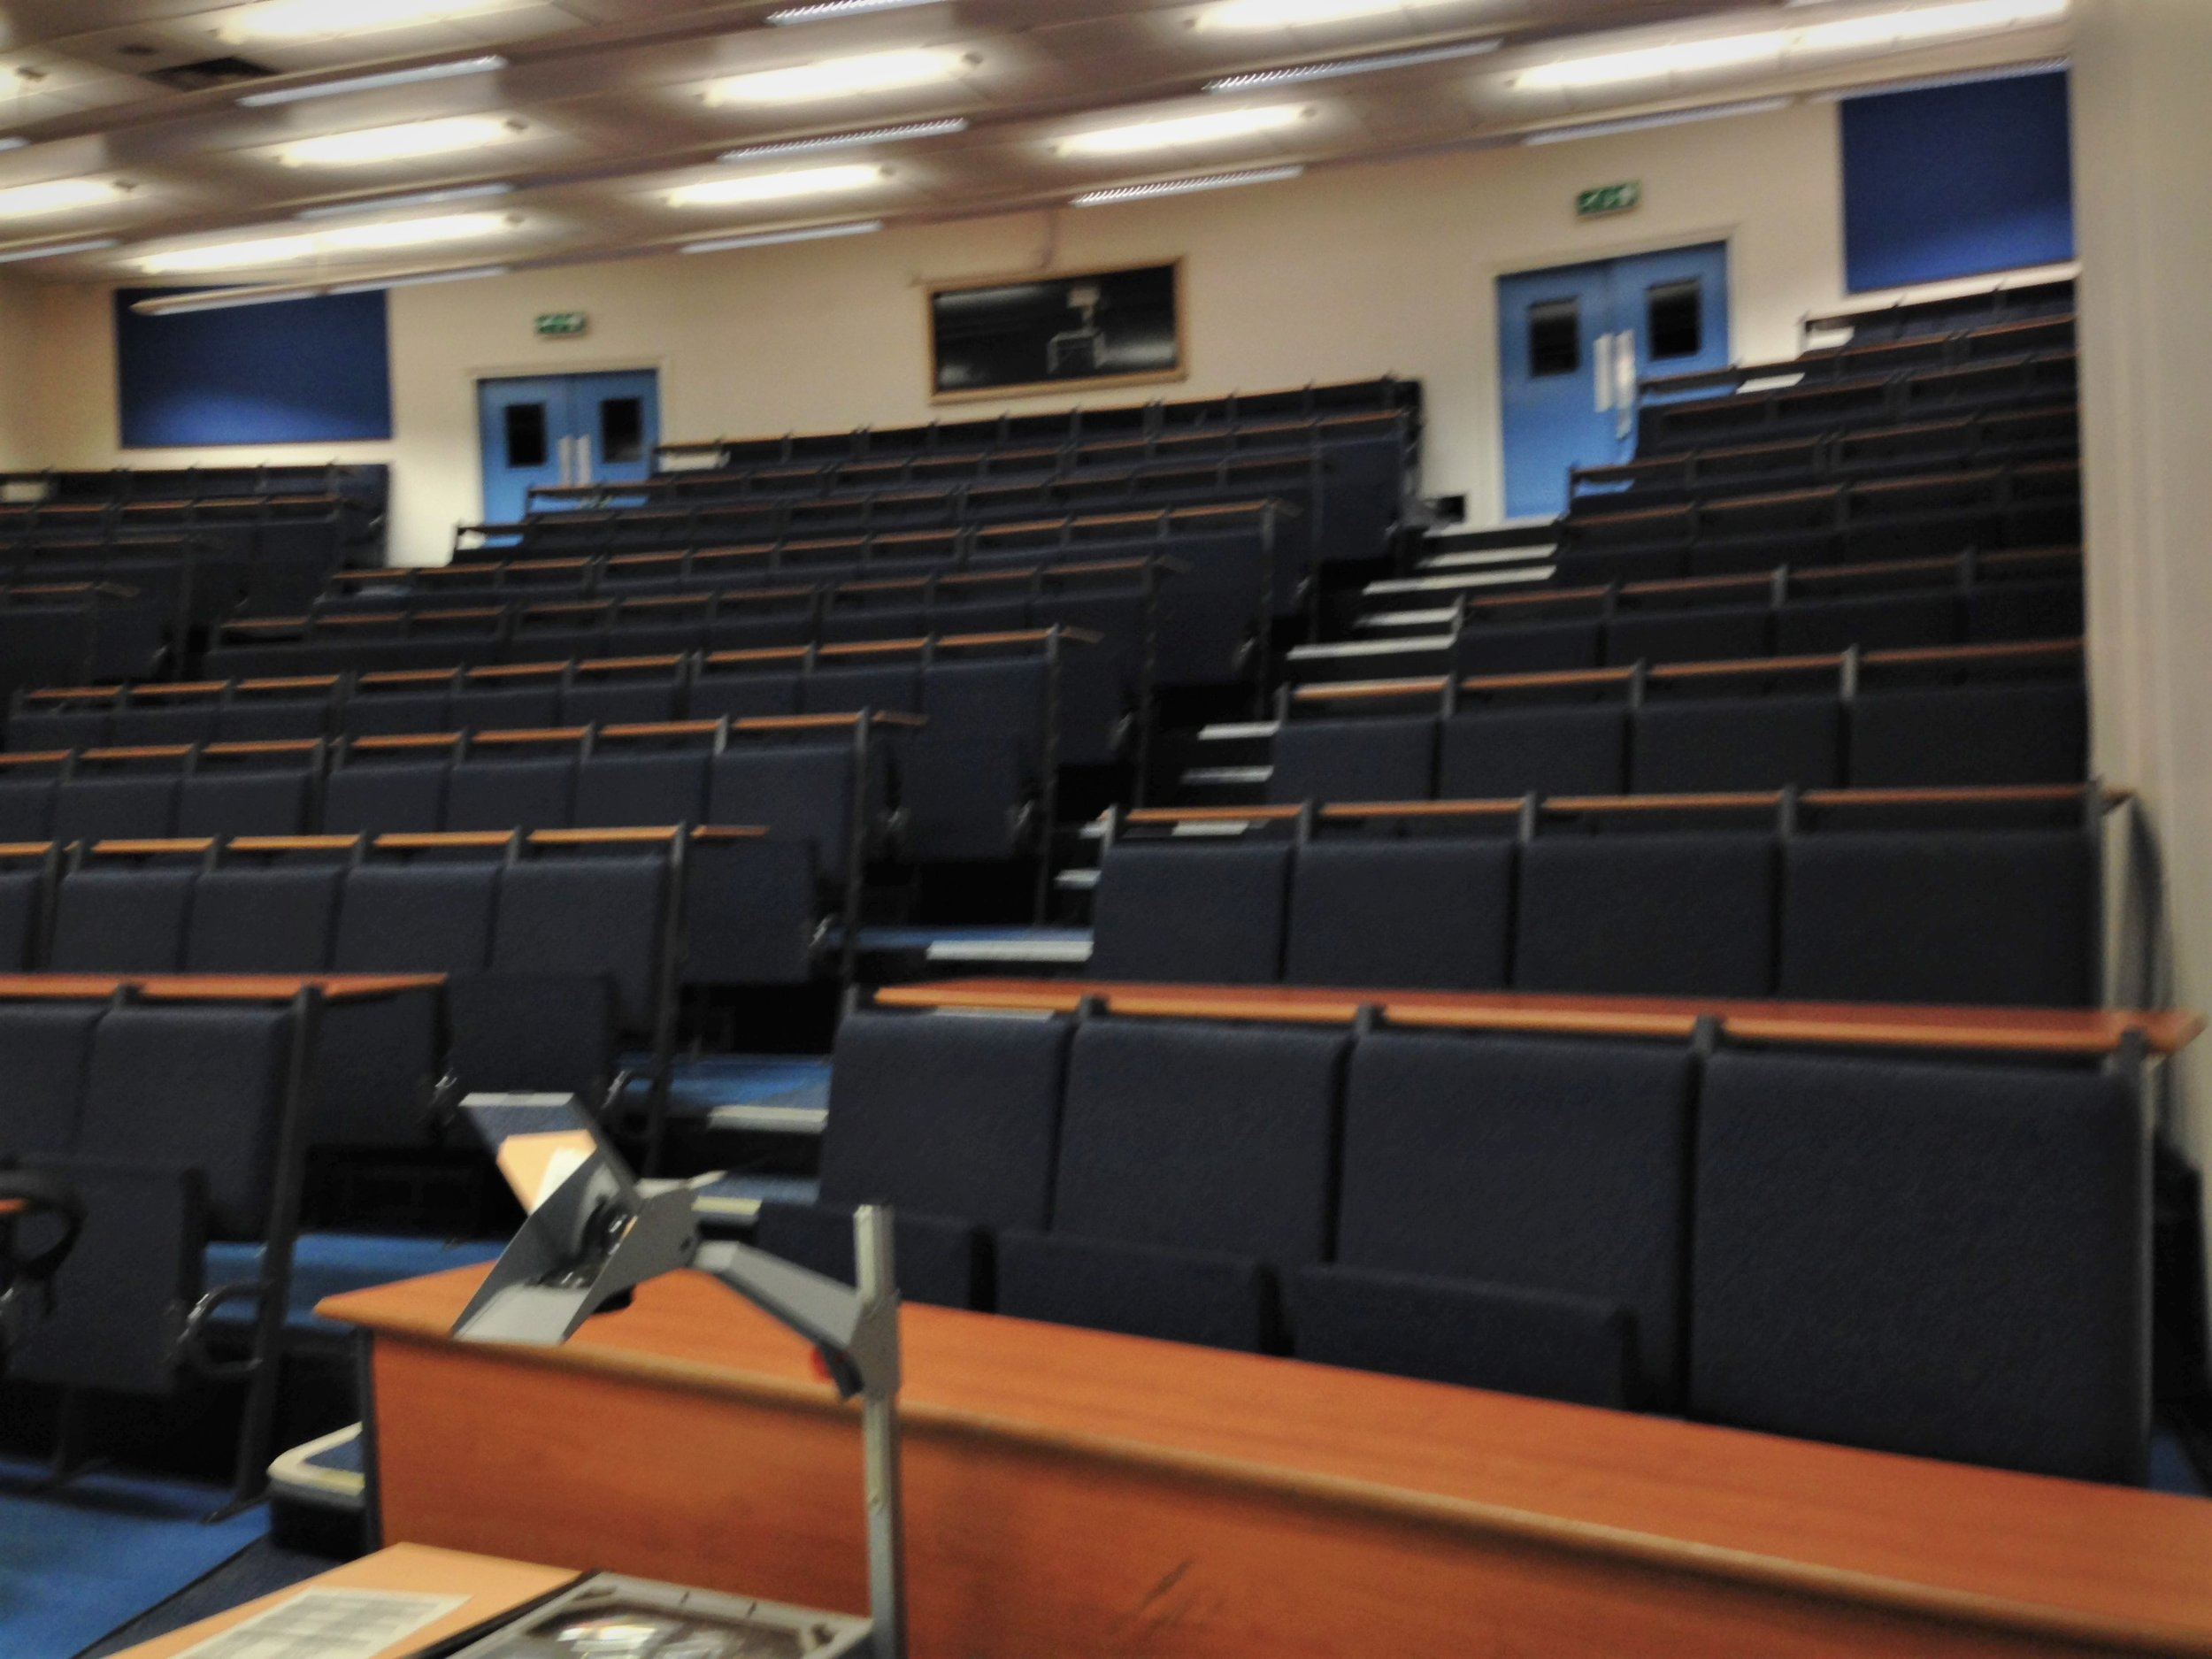 Mechanical Engineering Lecture Theatre B before works commenced.